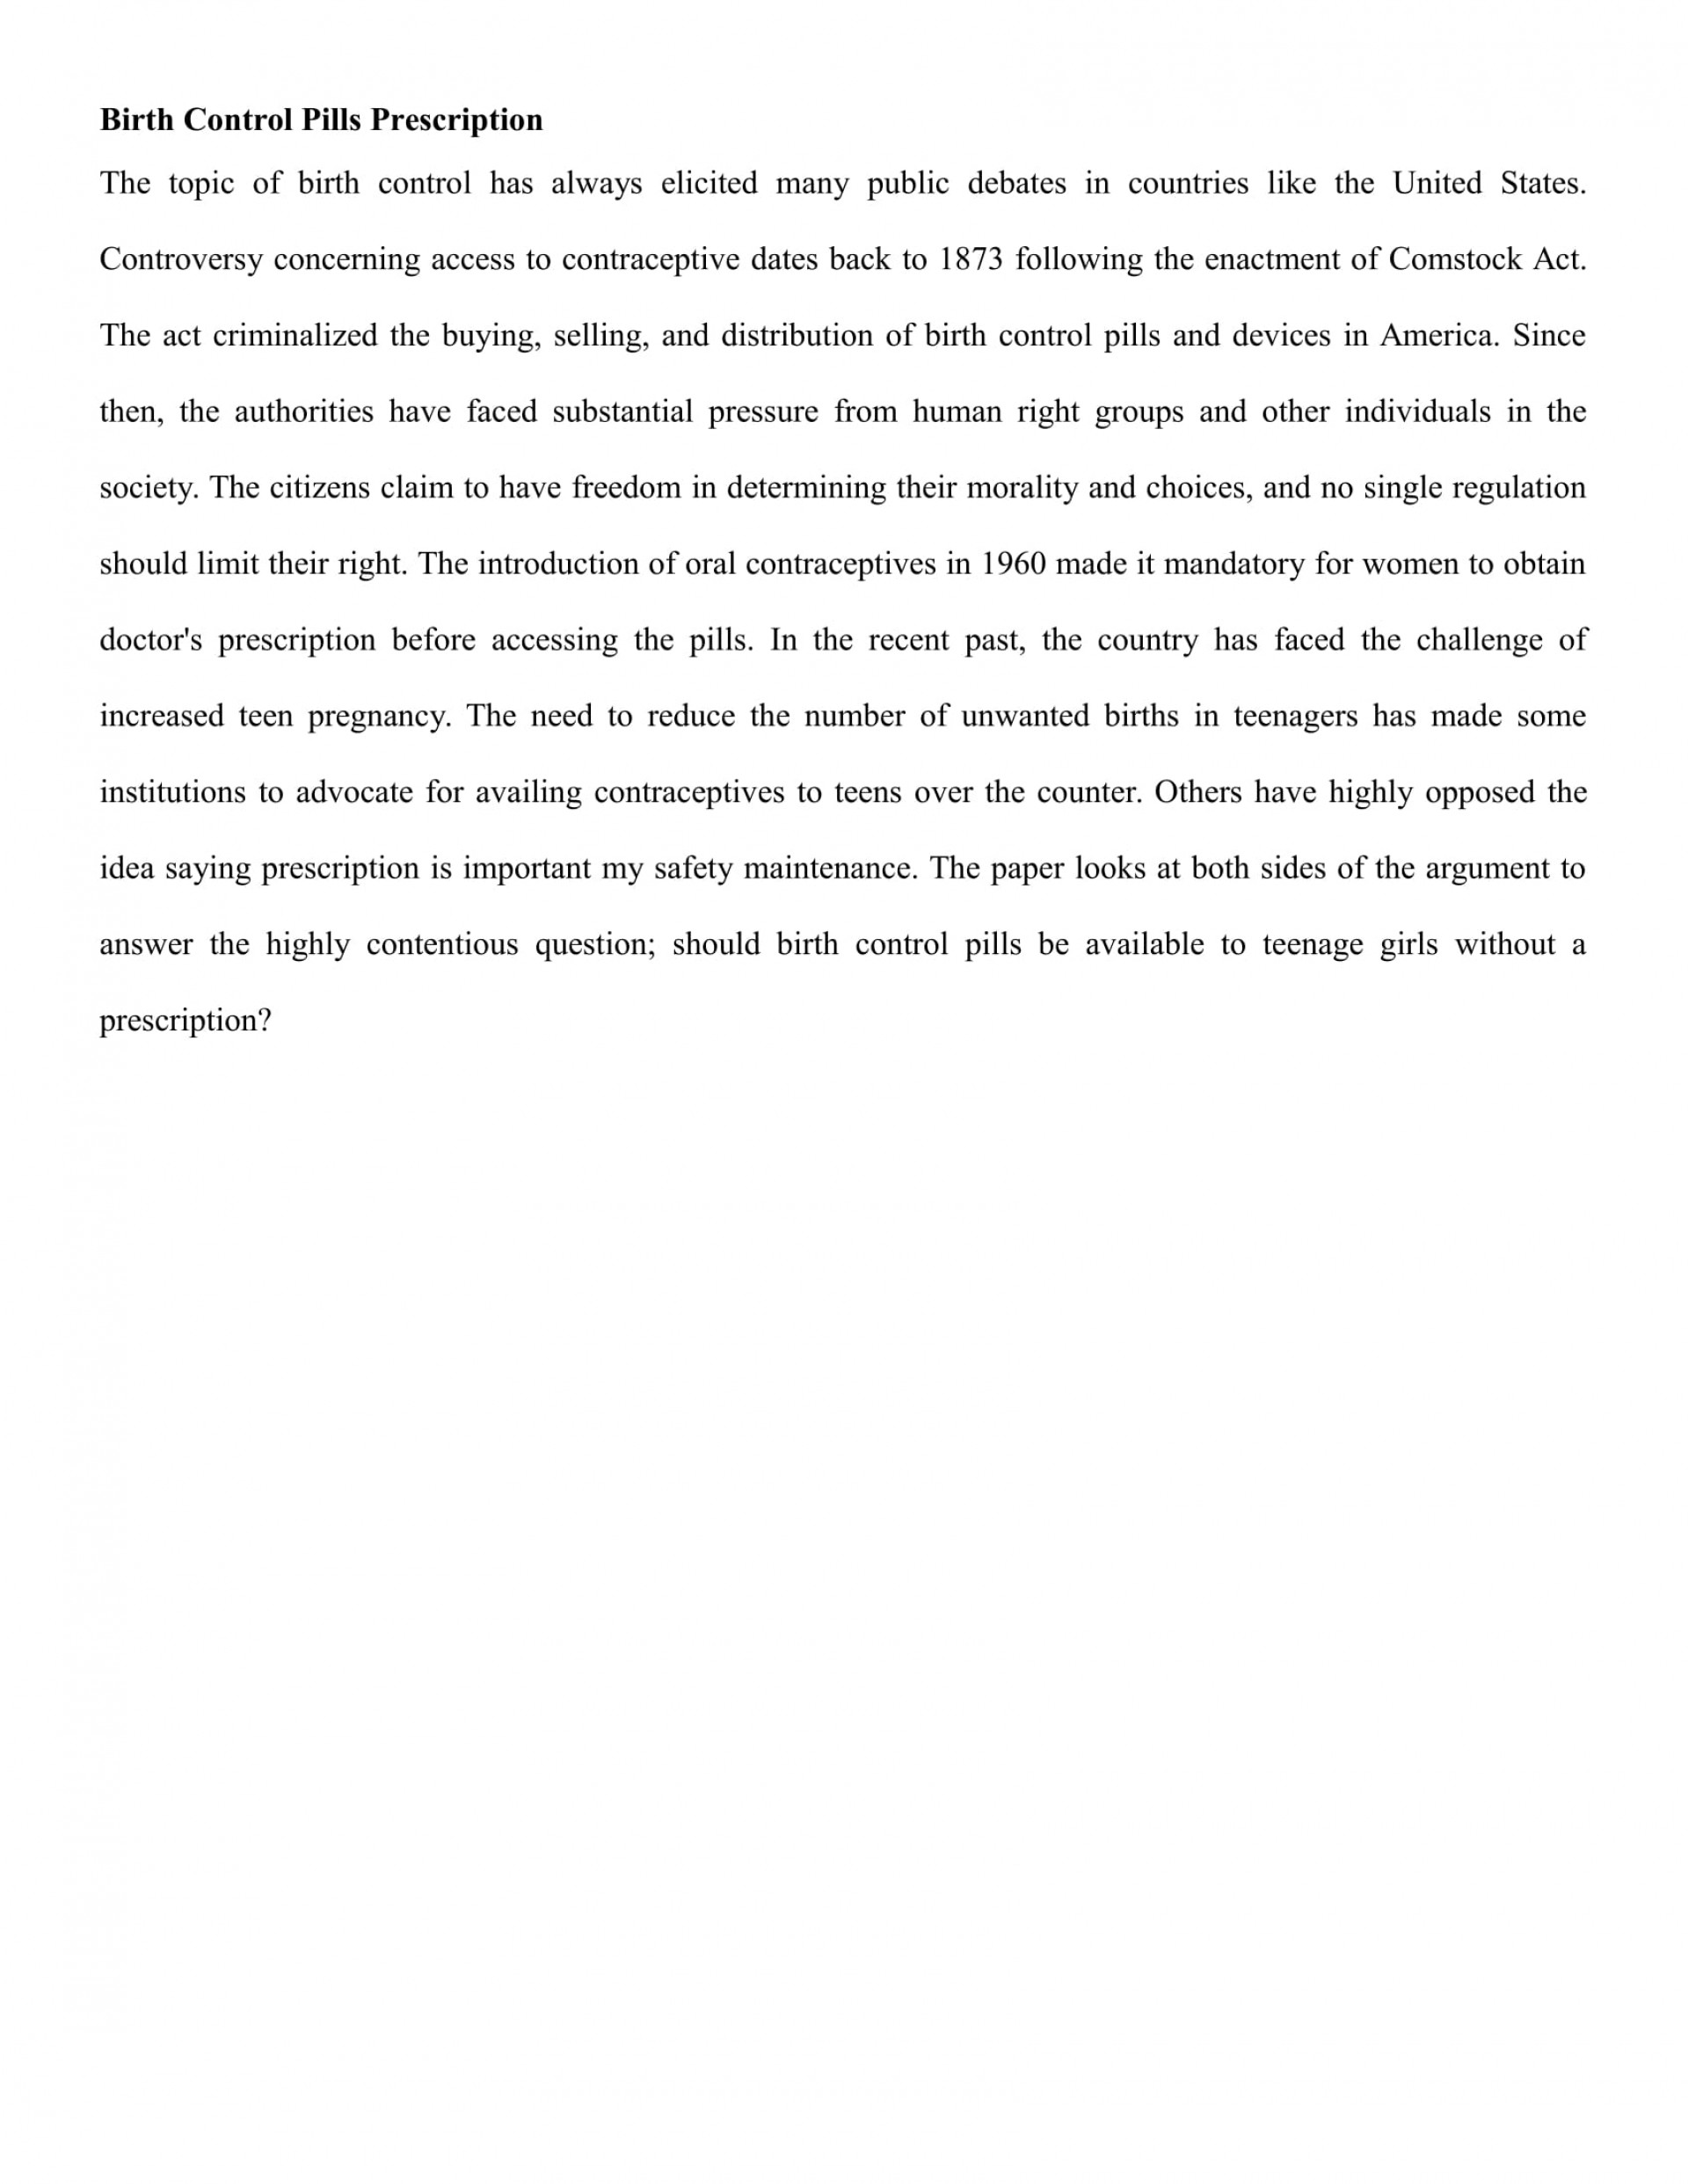 002 Teen Pregnancy Essay An On Teenage Birth Control Rights Term Paper Academic Service Argumentative About Pills Prescript Conclusion In The Philippines Introduction Example Of Short Amazing Pdf Body 1920